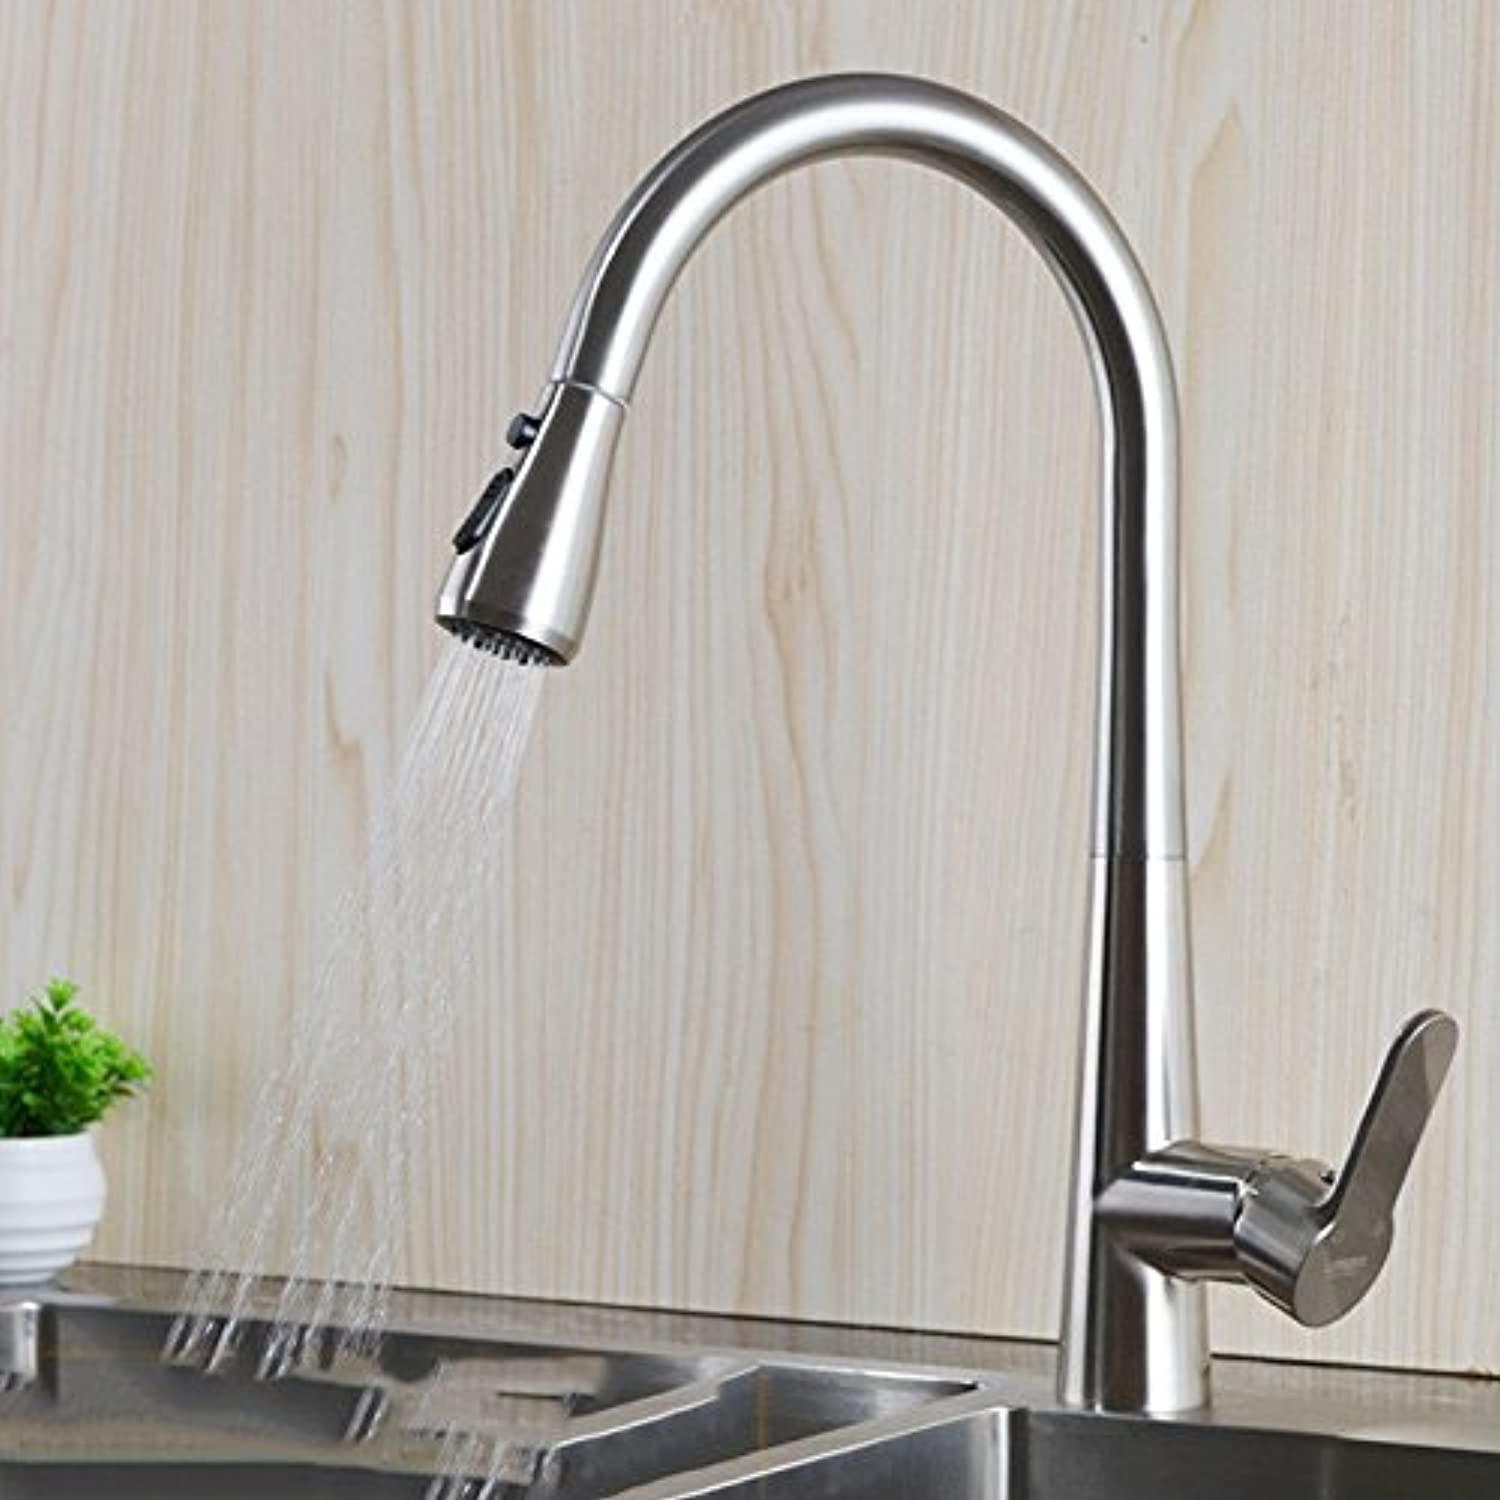 Commercial Single Lever Pull Down Kitchen Sink Faucet Brass Constructed Polished Full Copper Pull Kitchen Faucet hot and Cold Shower Head redating Lead-Free Sink Faucet, A